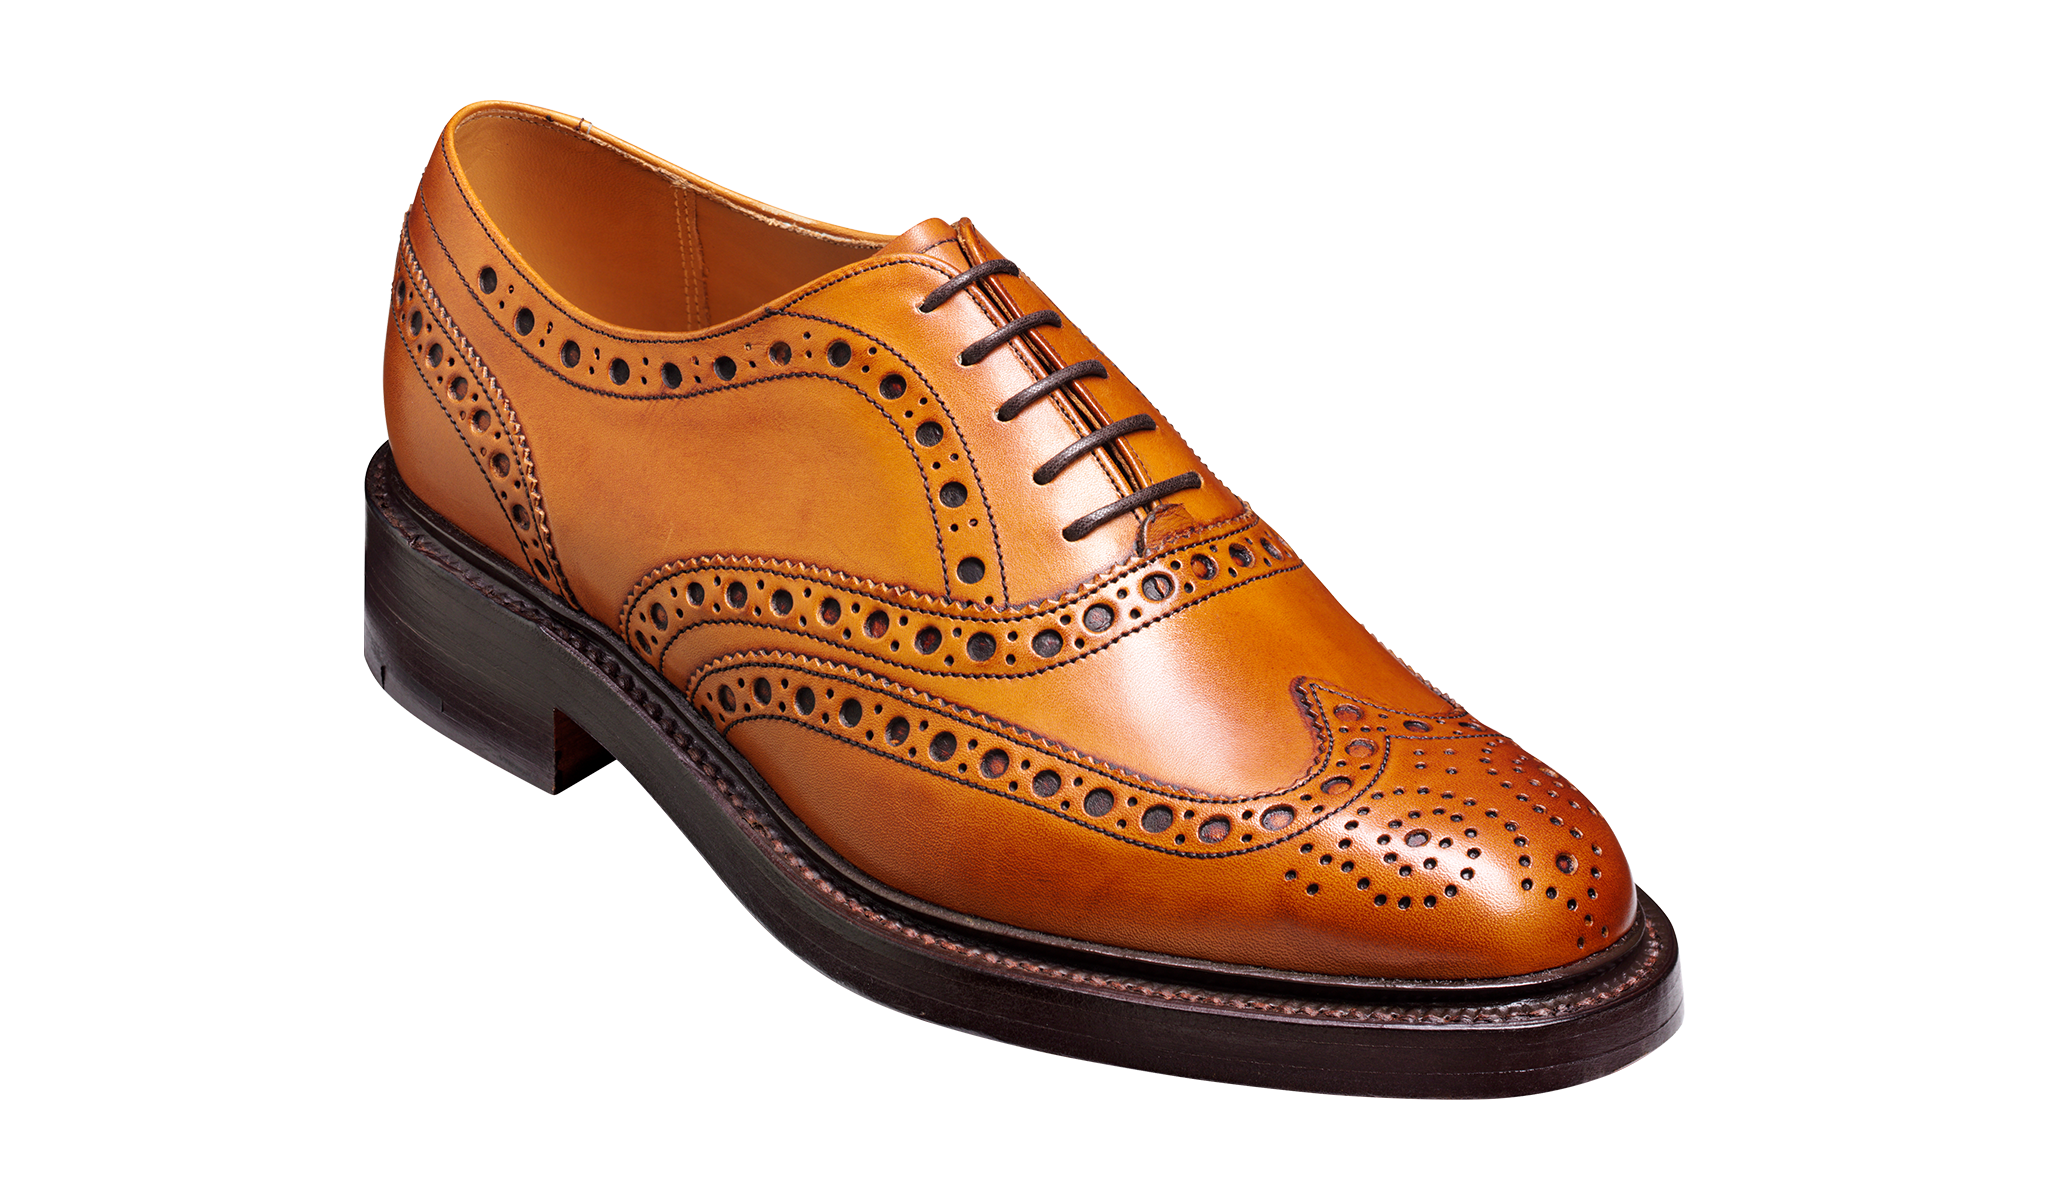 Westfield -  Men's brown brogue shoe from Barker